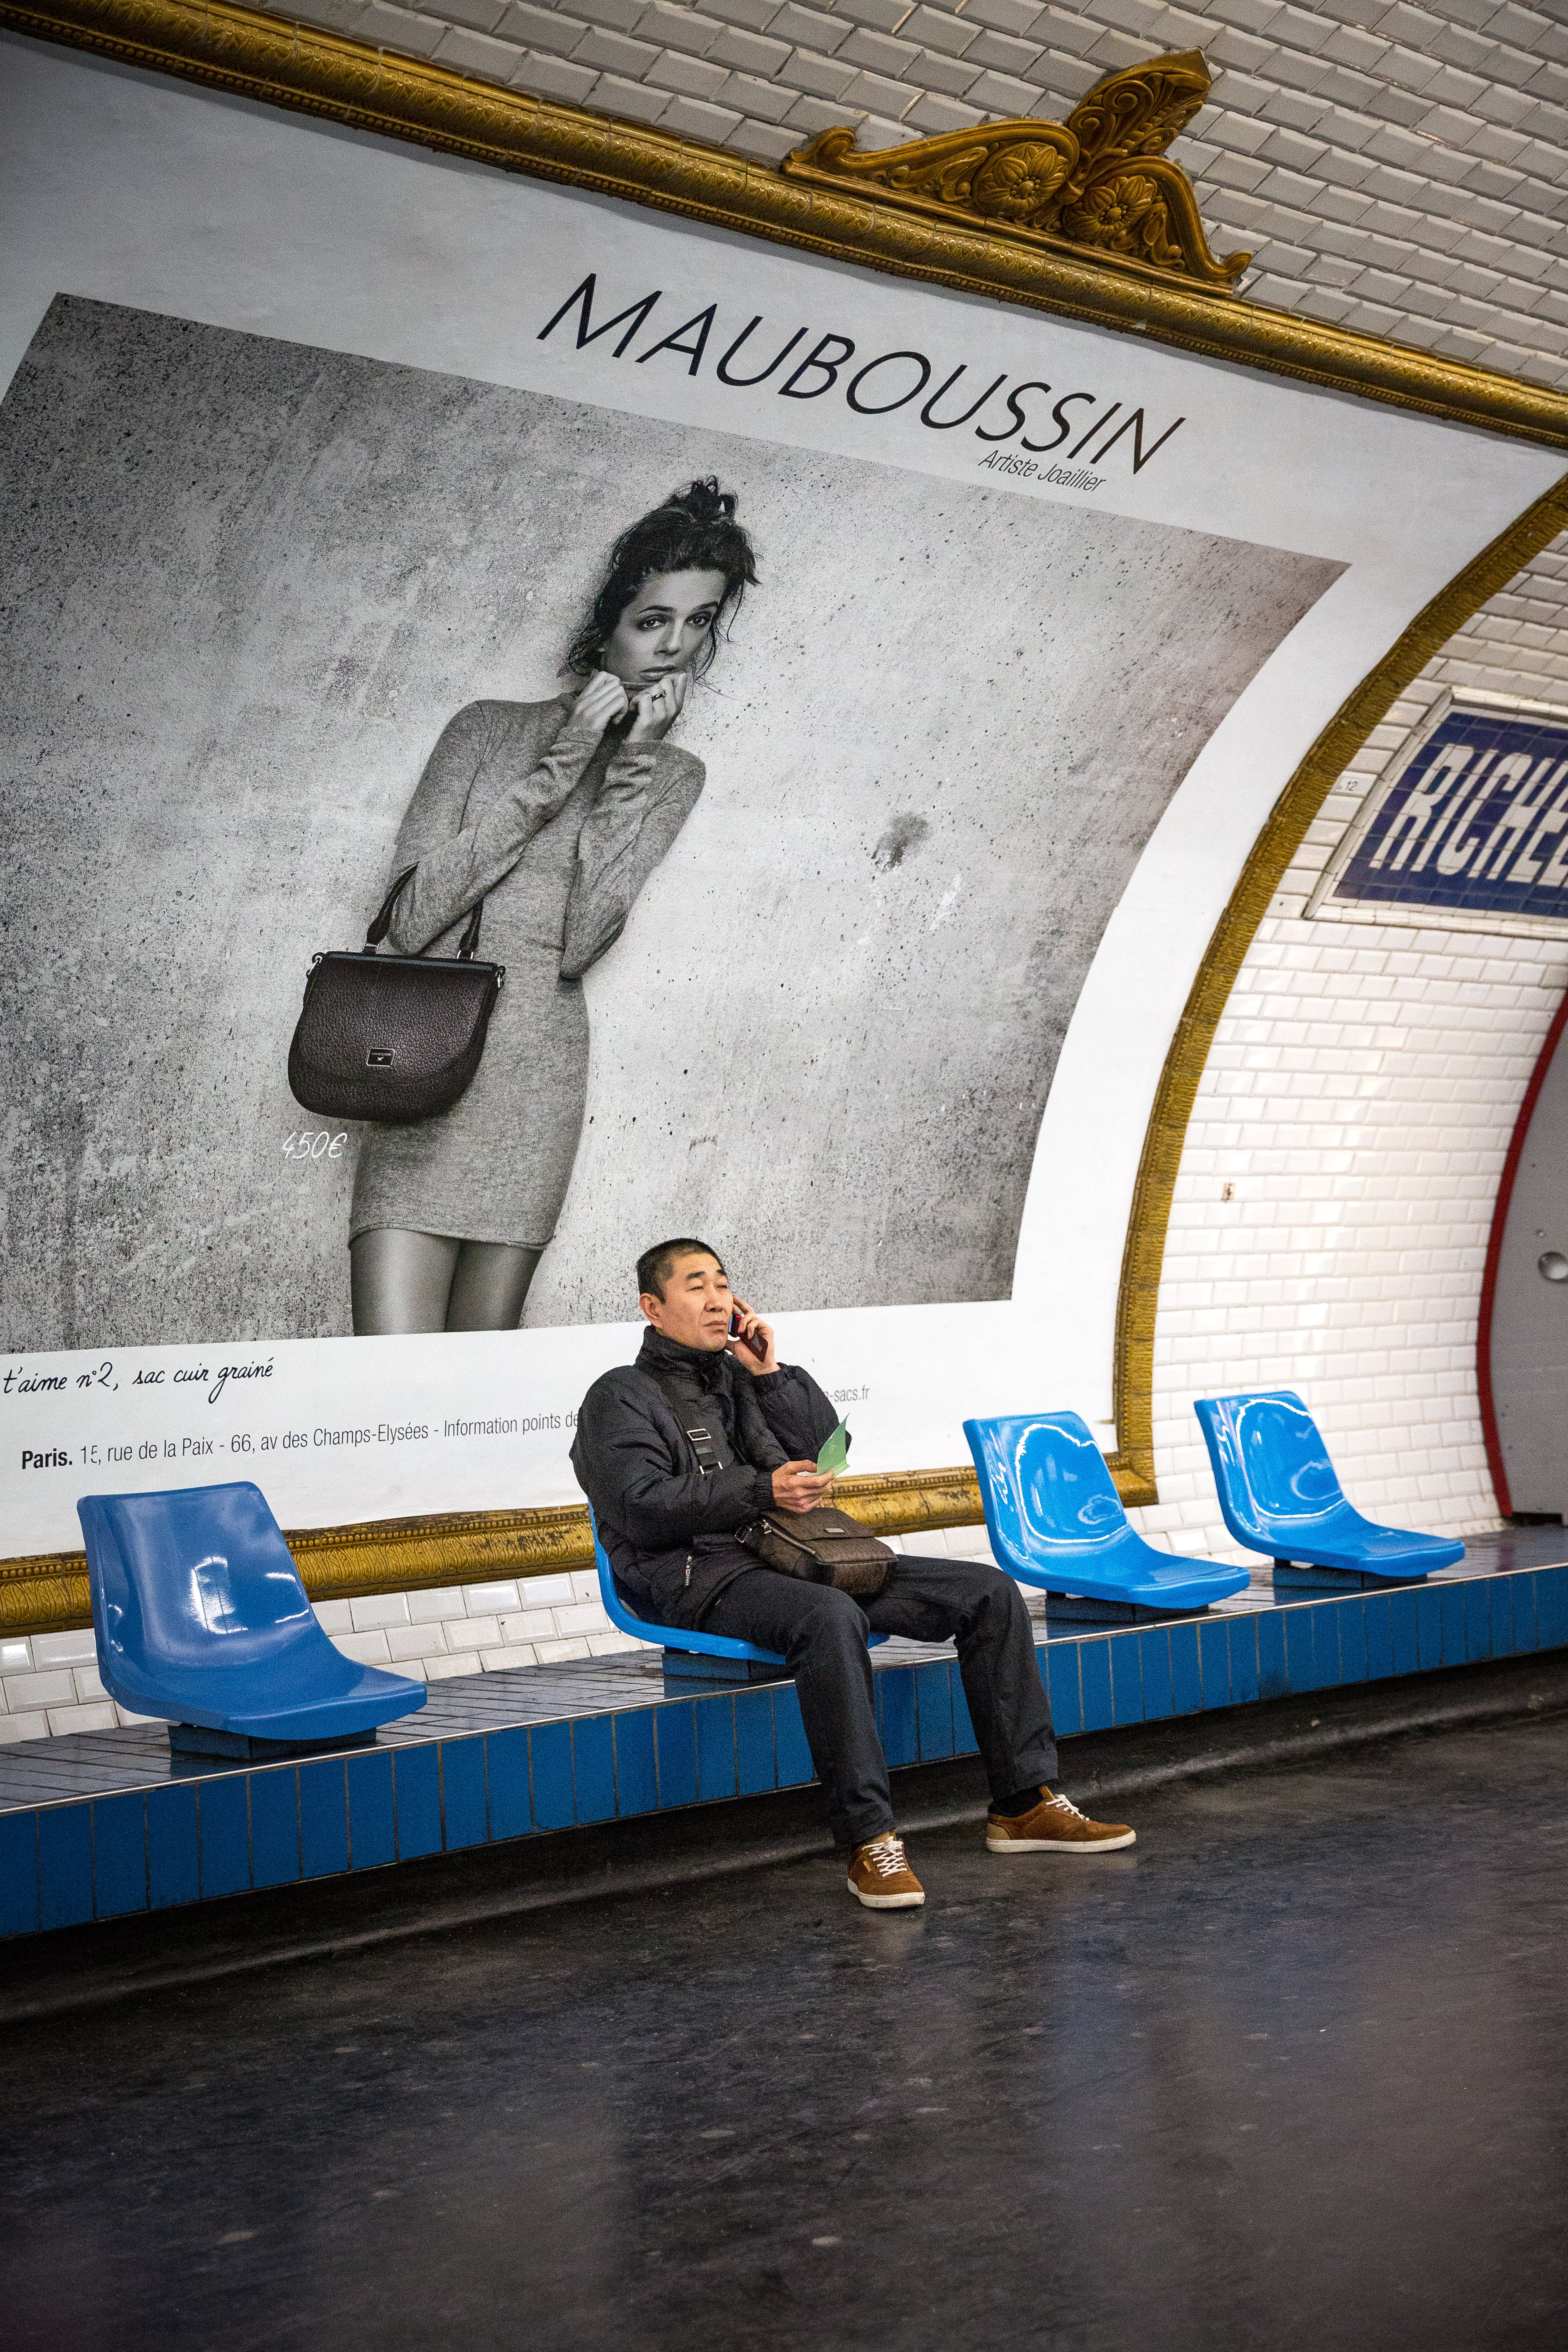 Man Sitting on Blue Chair in Front of Mauboussin Signage